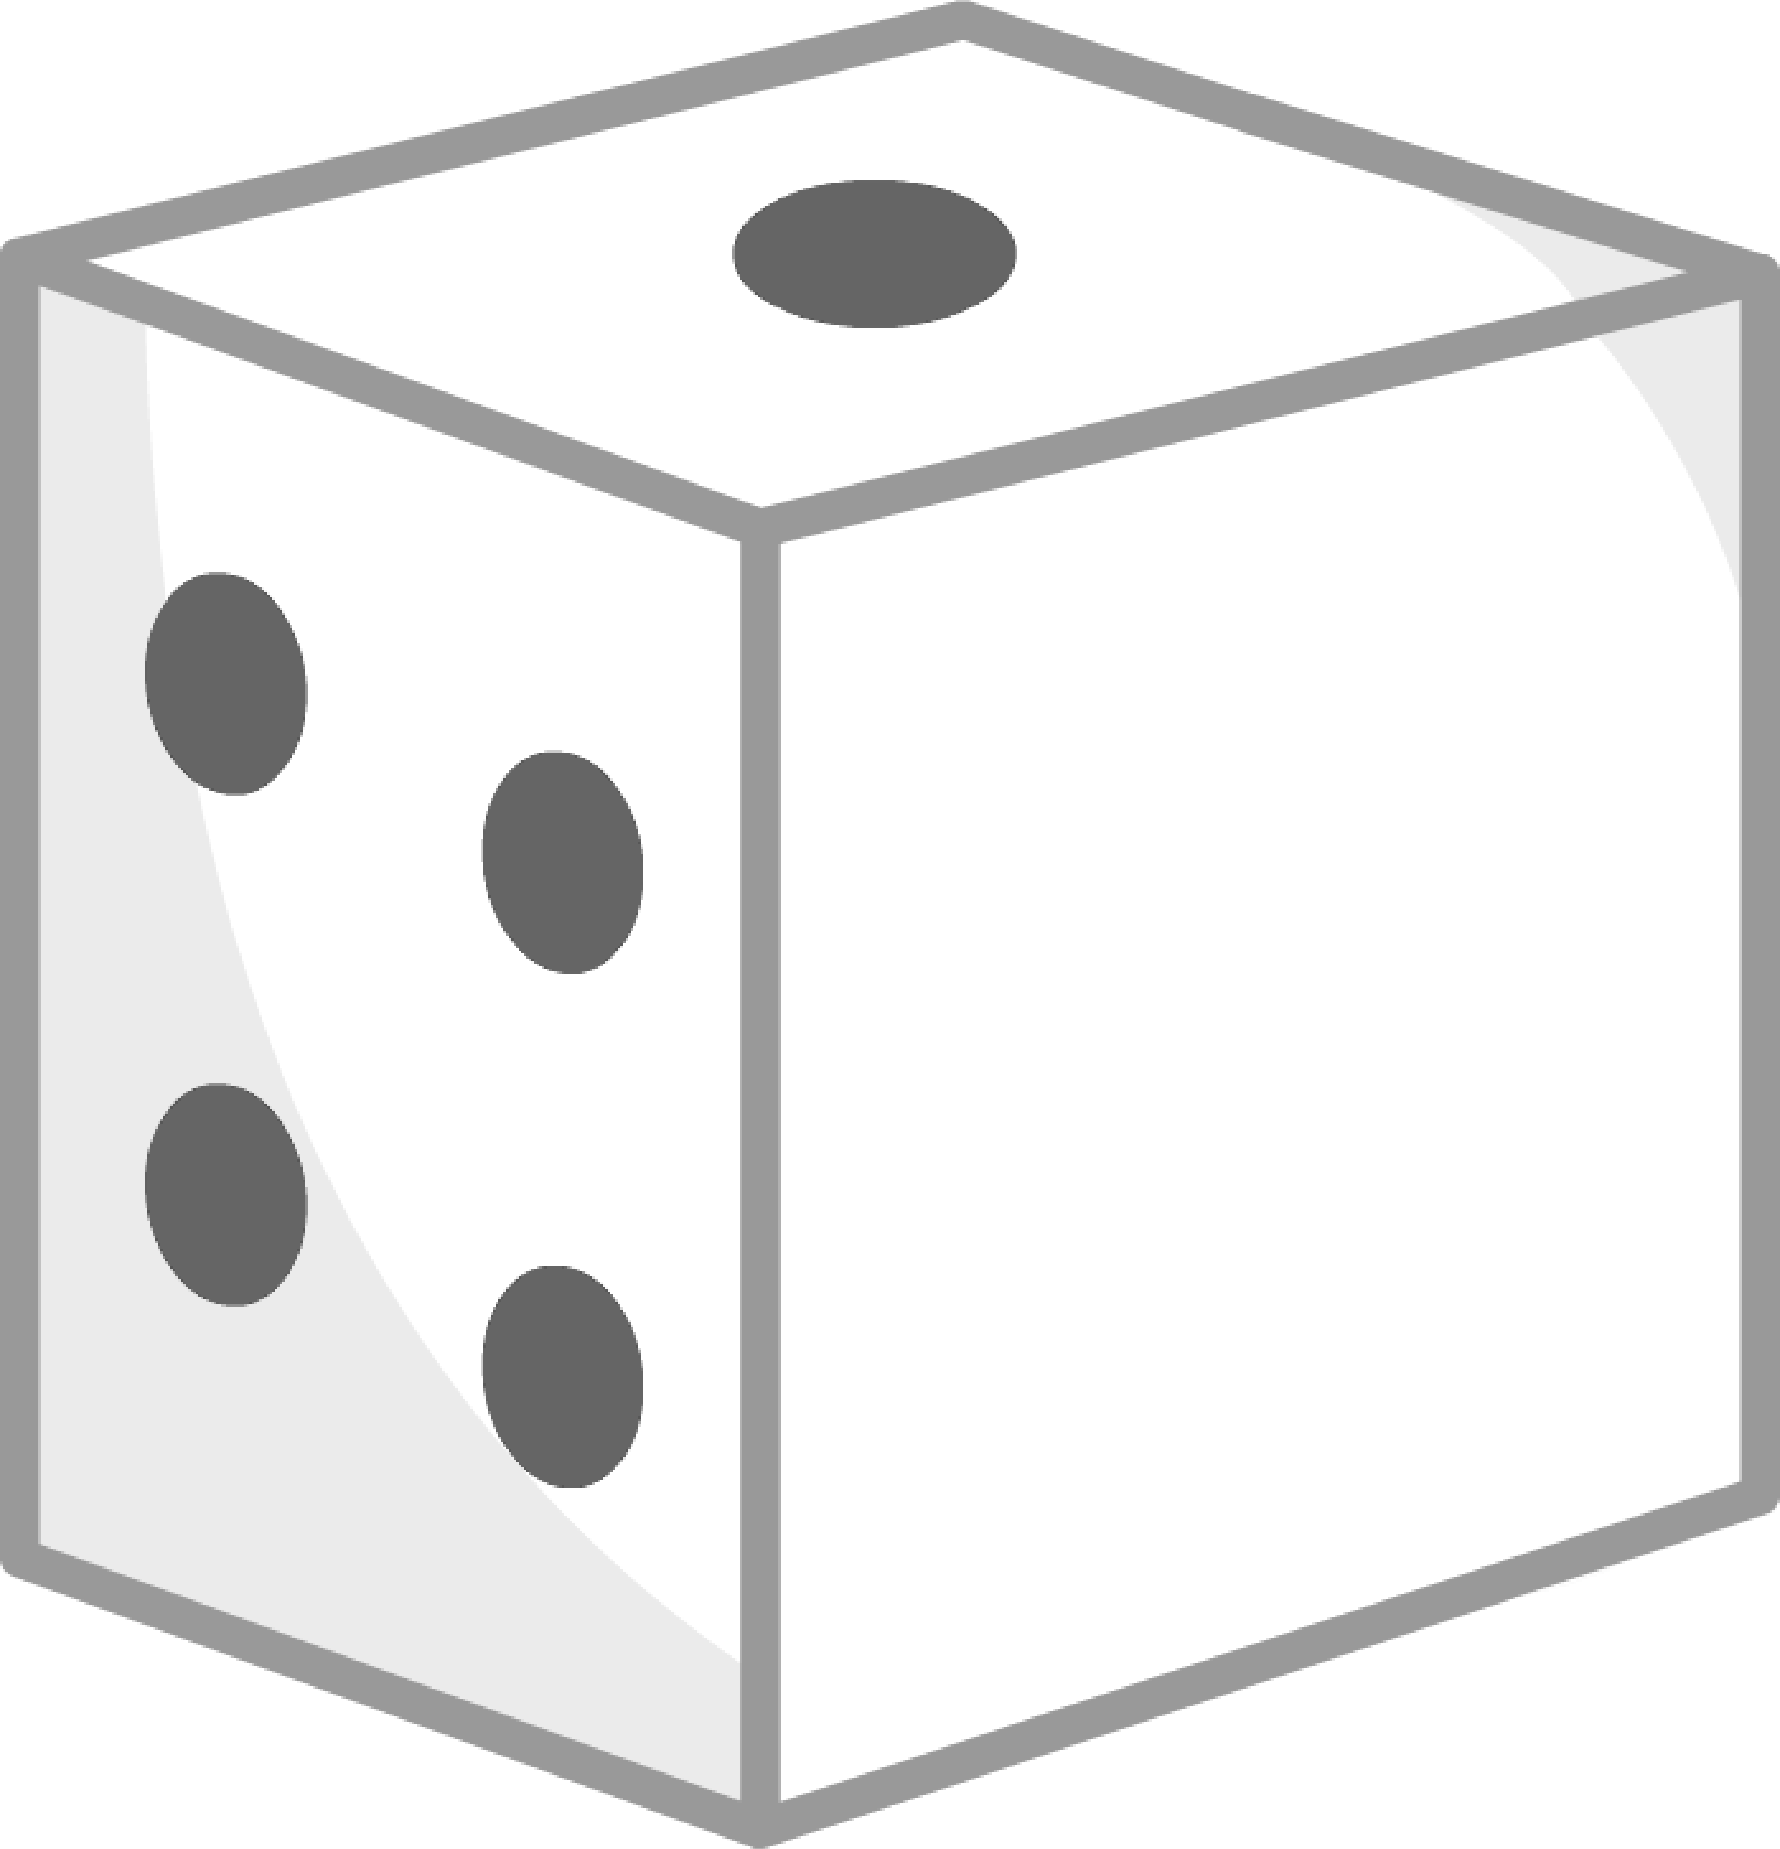 Dice clipart square object Object Dice/die by png Wikia